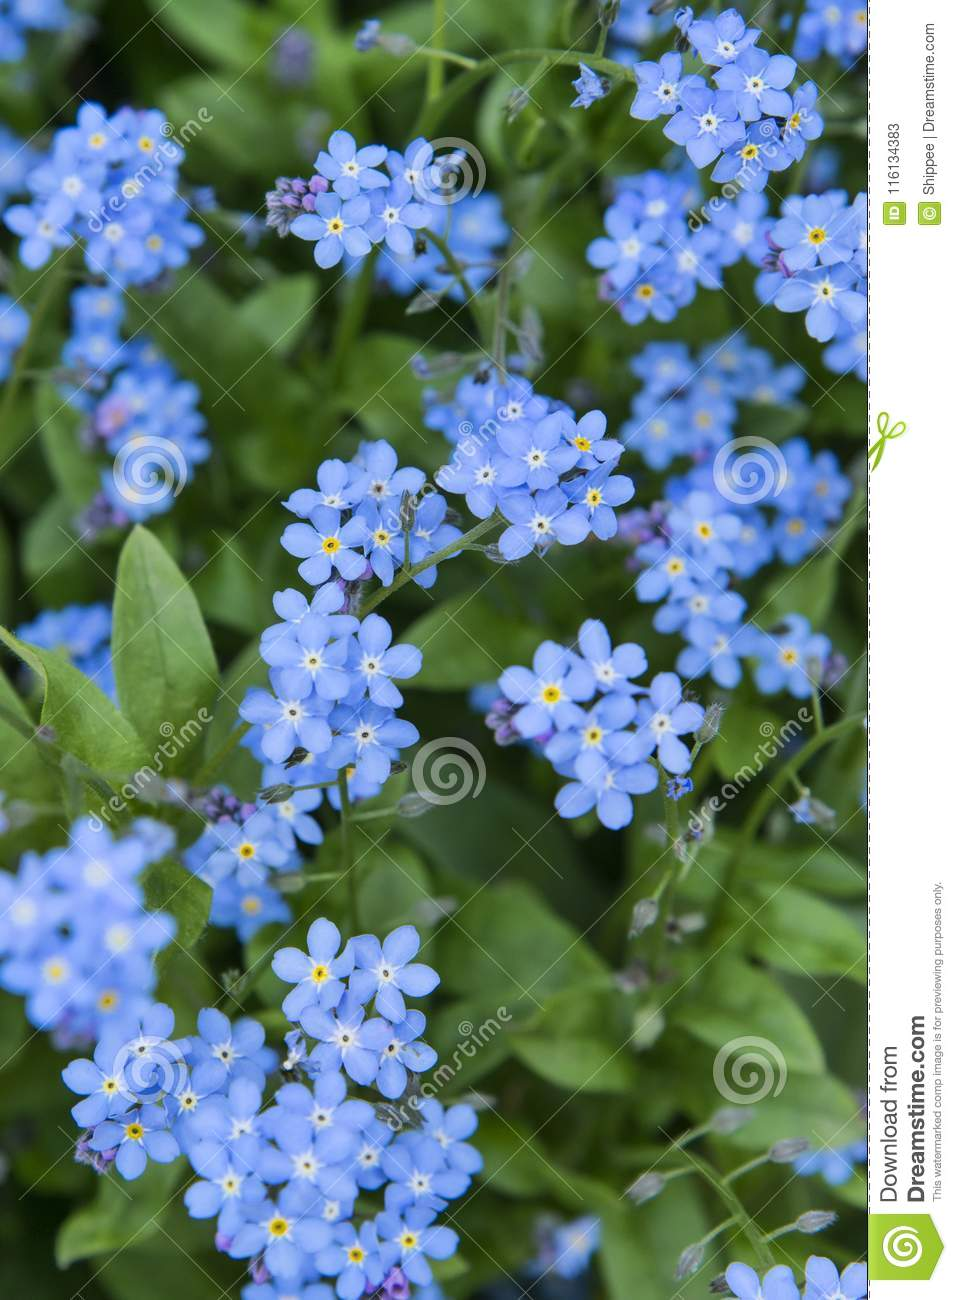 Tiny Blue Flowers Stock Image Image Of Growth Little 116134383